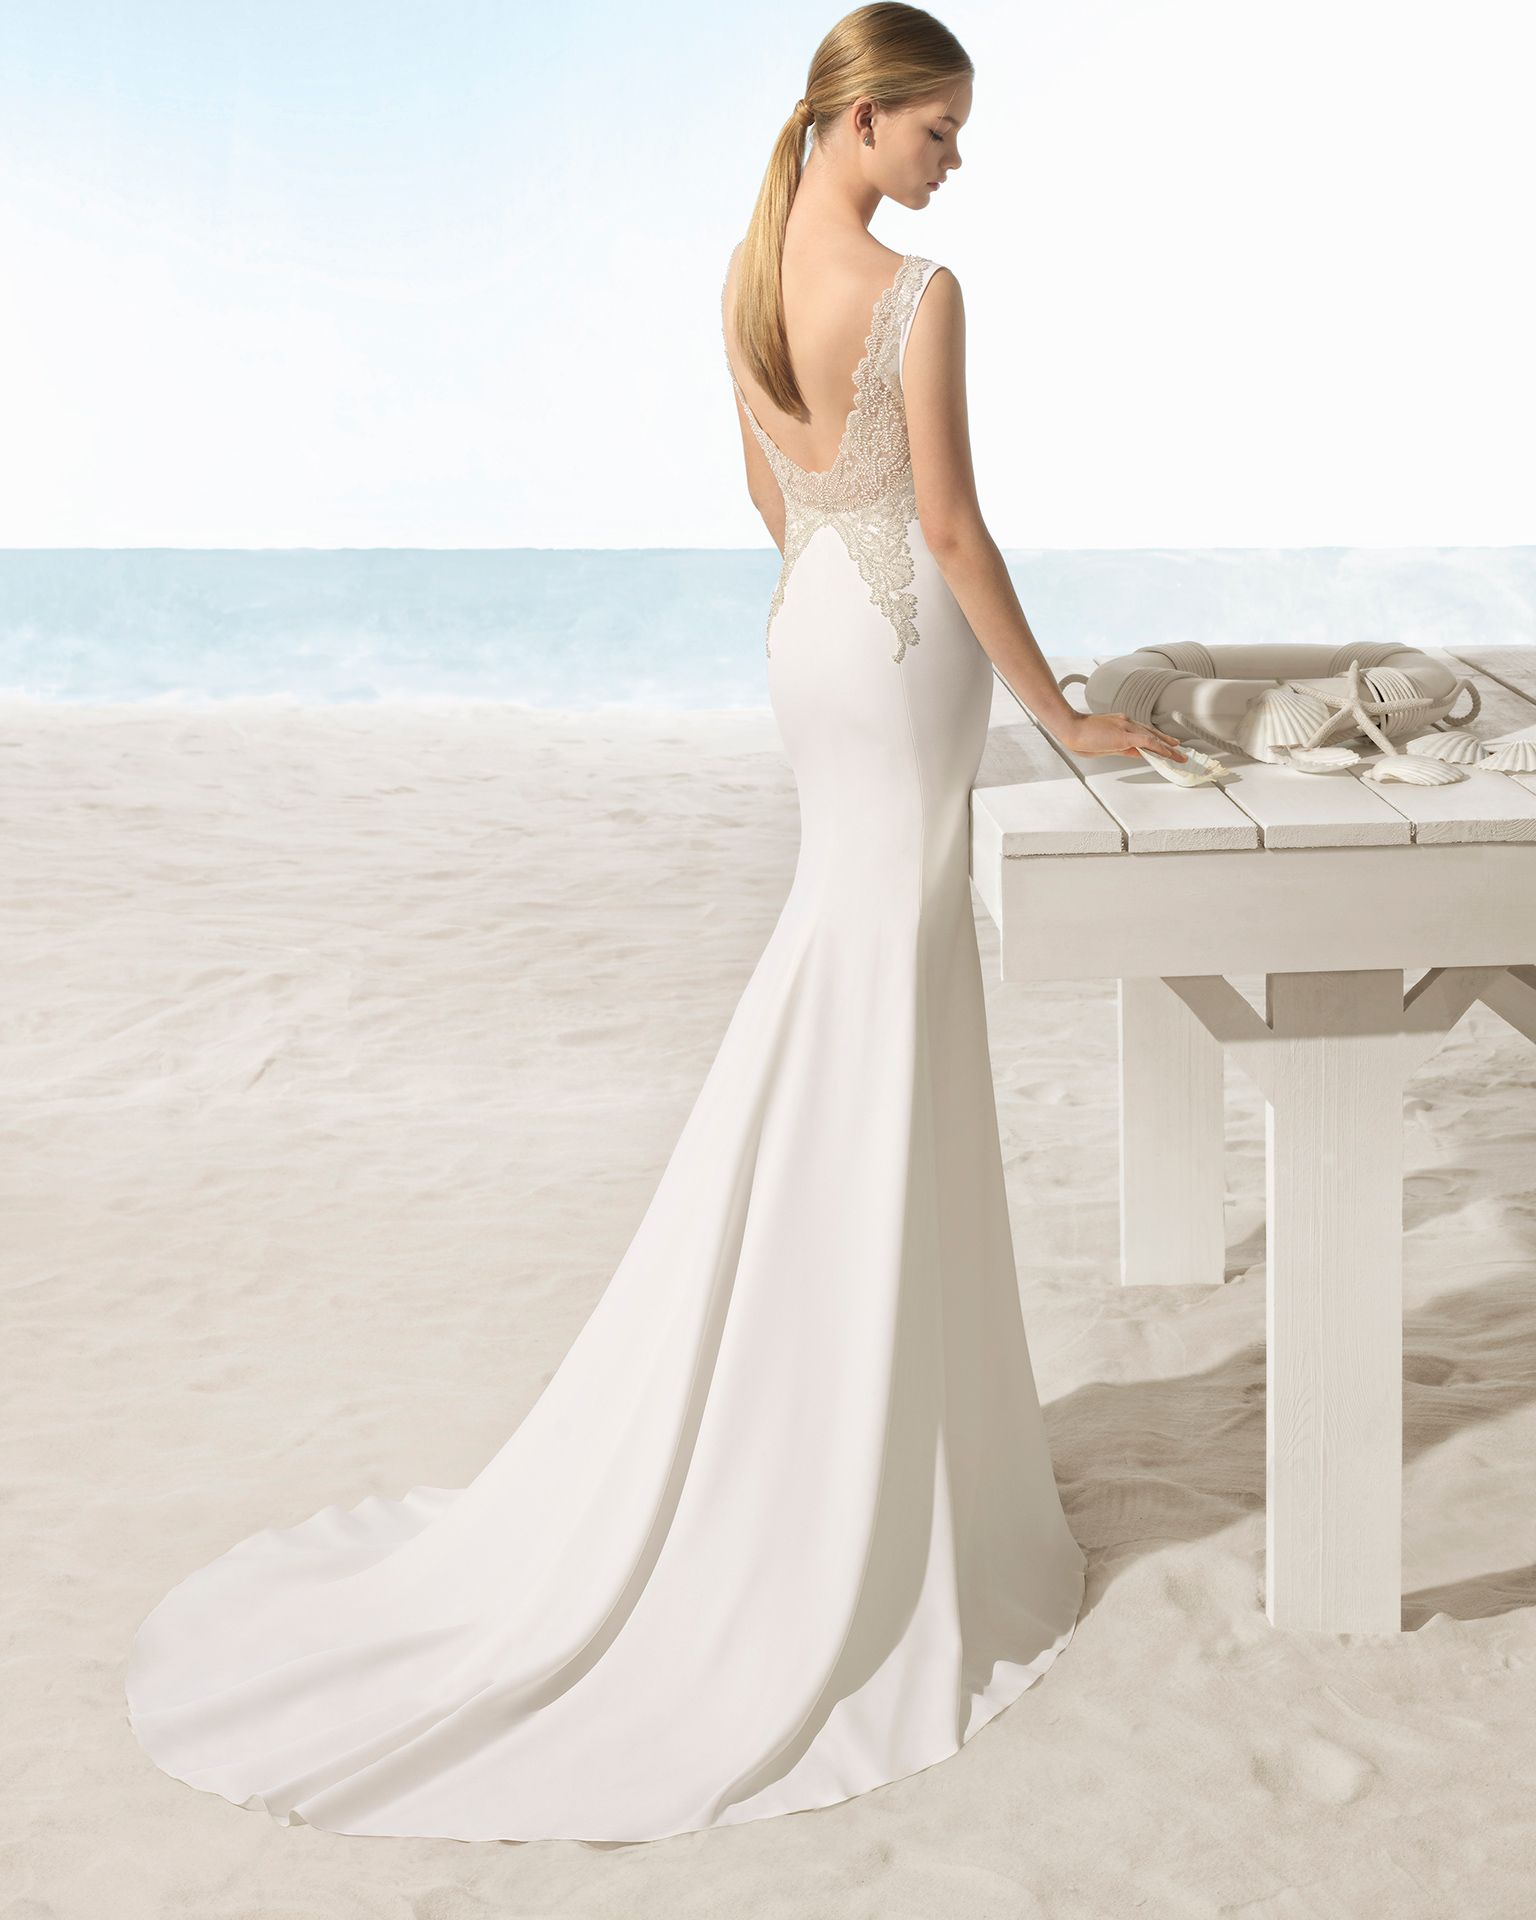 Mermaid-style crepe wedding dress with low back with beadwork detail.